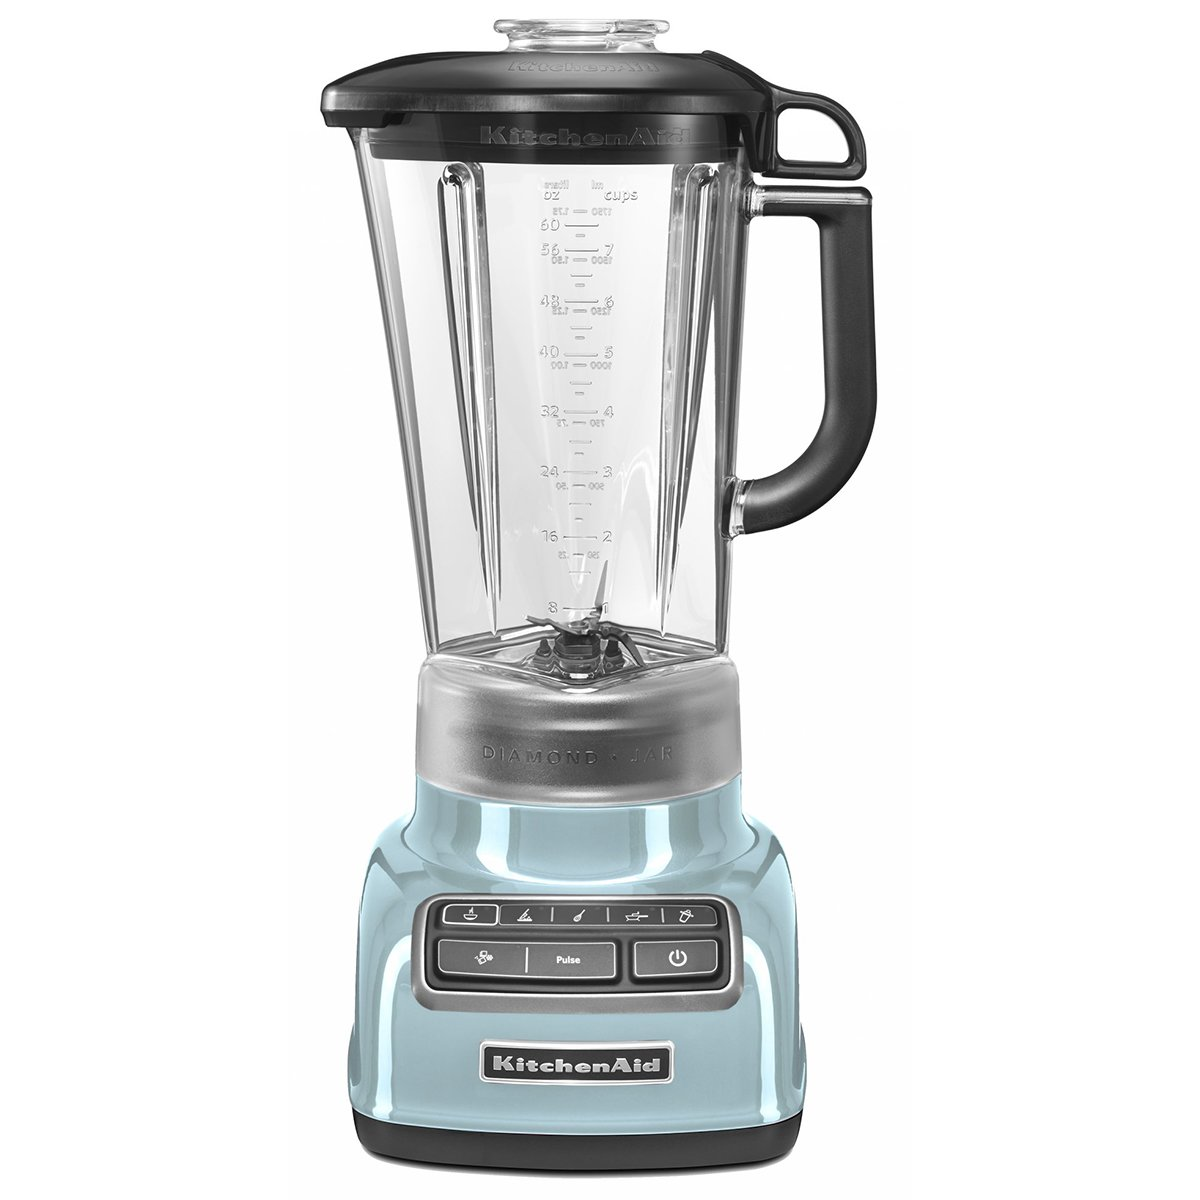 new kitchenaid 5ksb1586aaz blender ebay. Black Bedroom Furniture Sets. Home Design Ideas